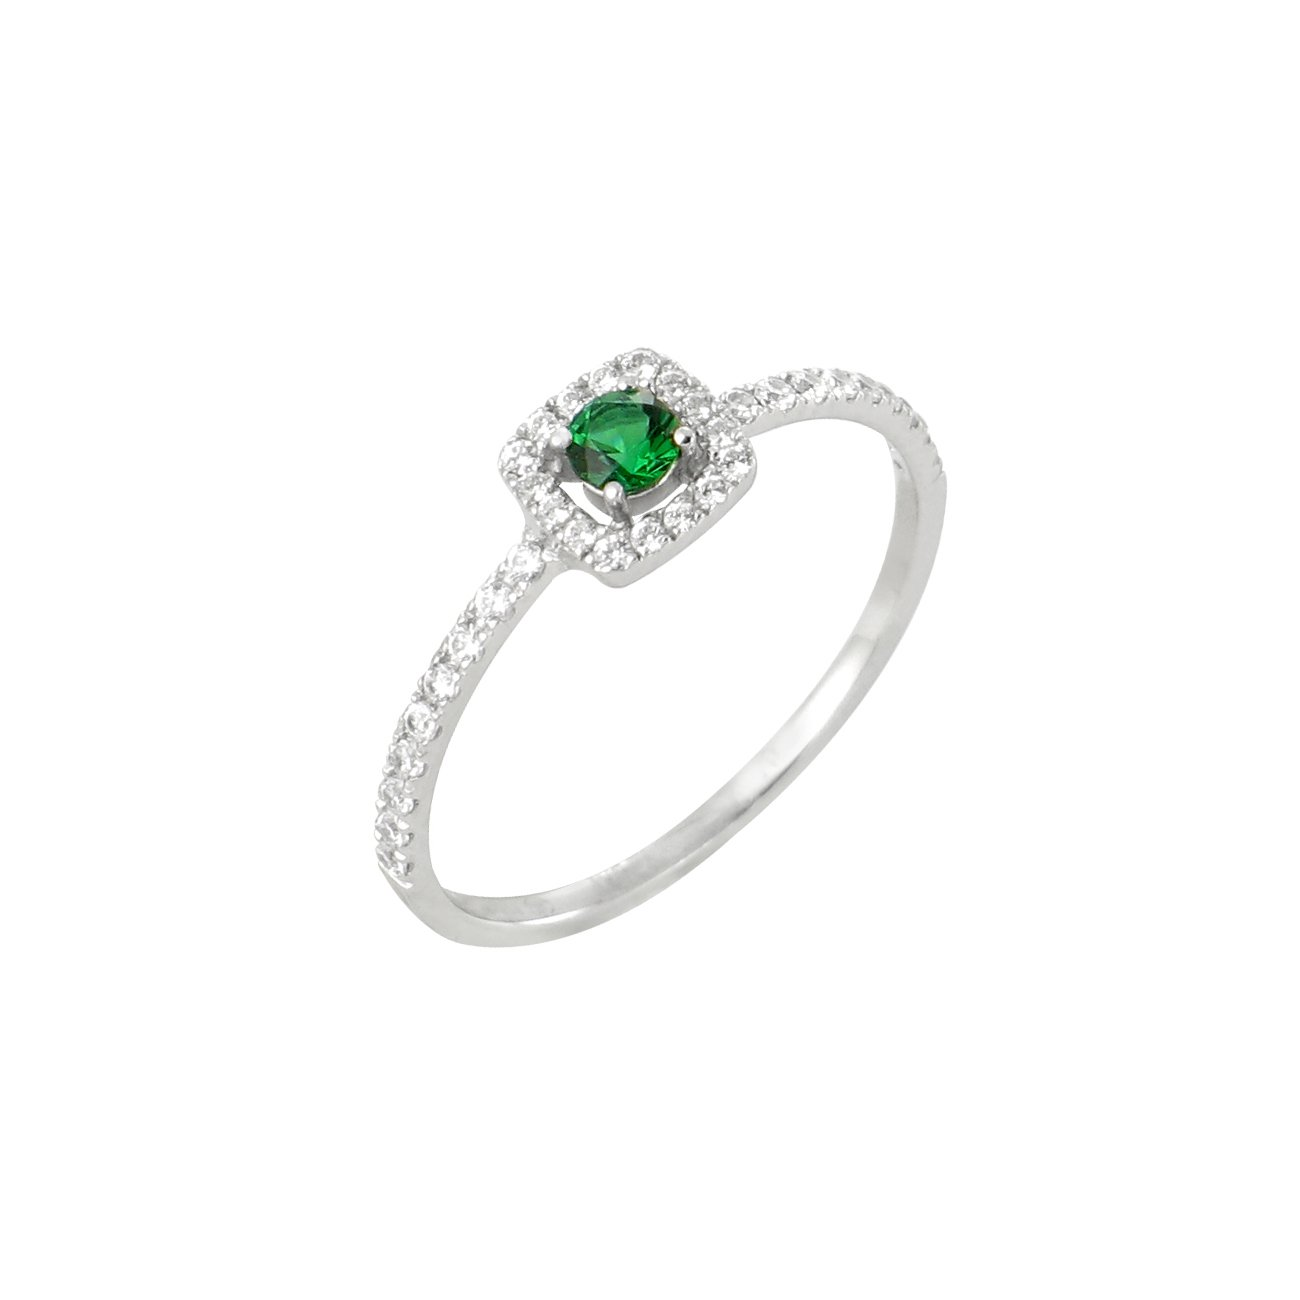 Bague en or blanc, diamants de 0.20ct et émeraude de 0.11ct